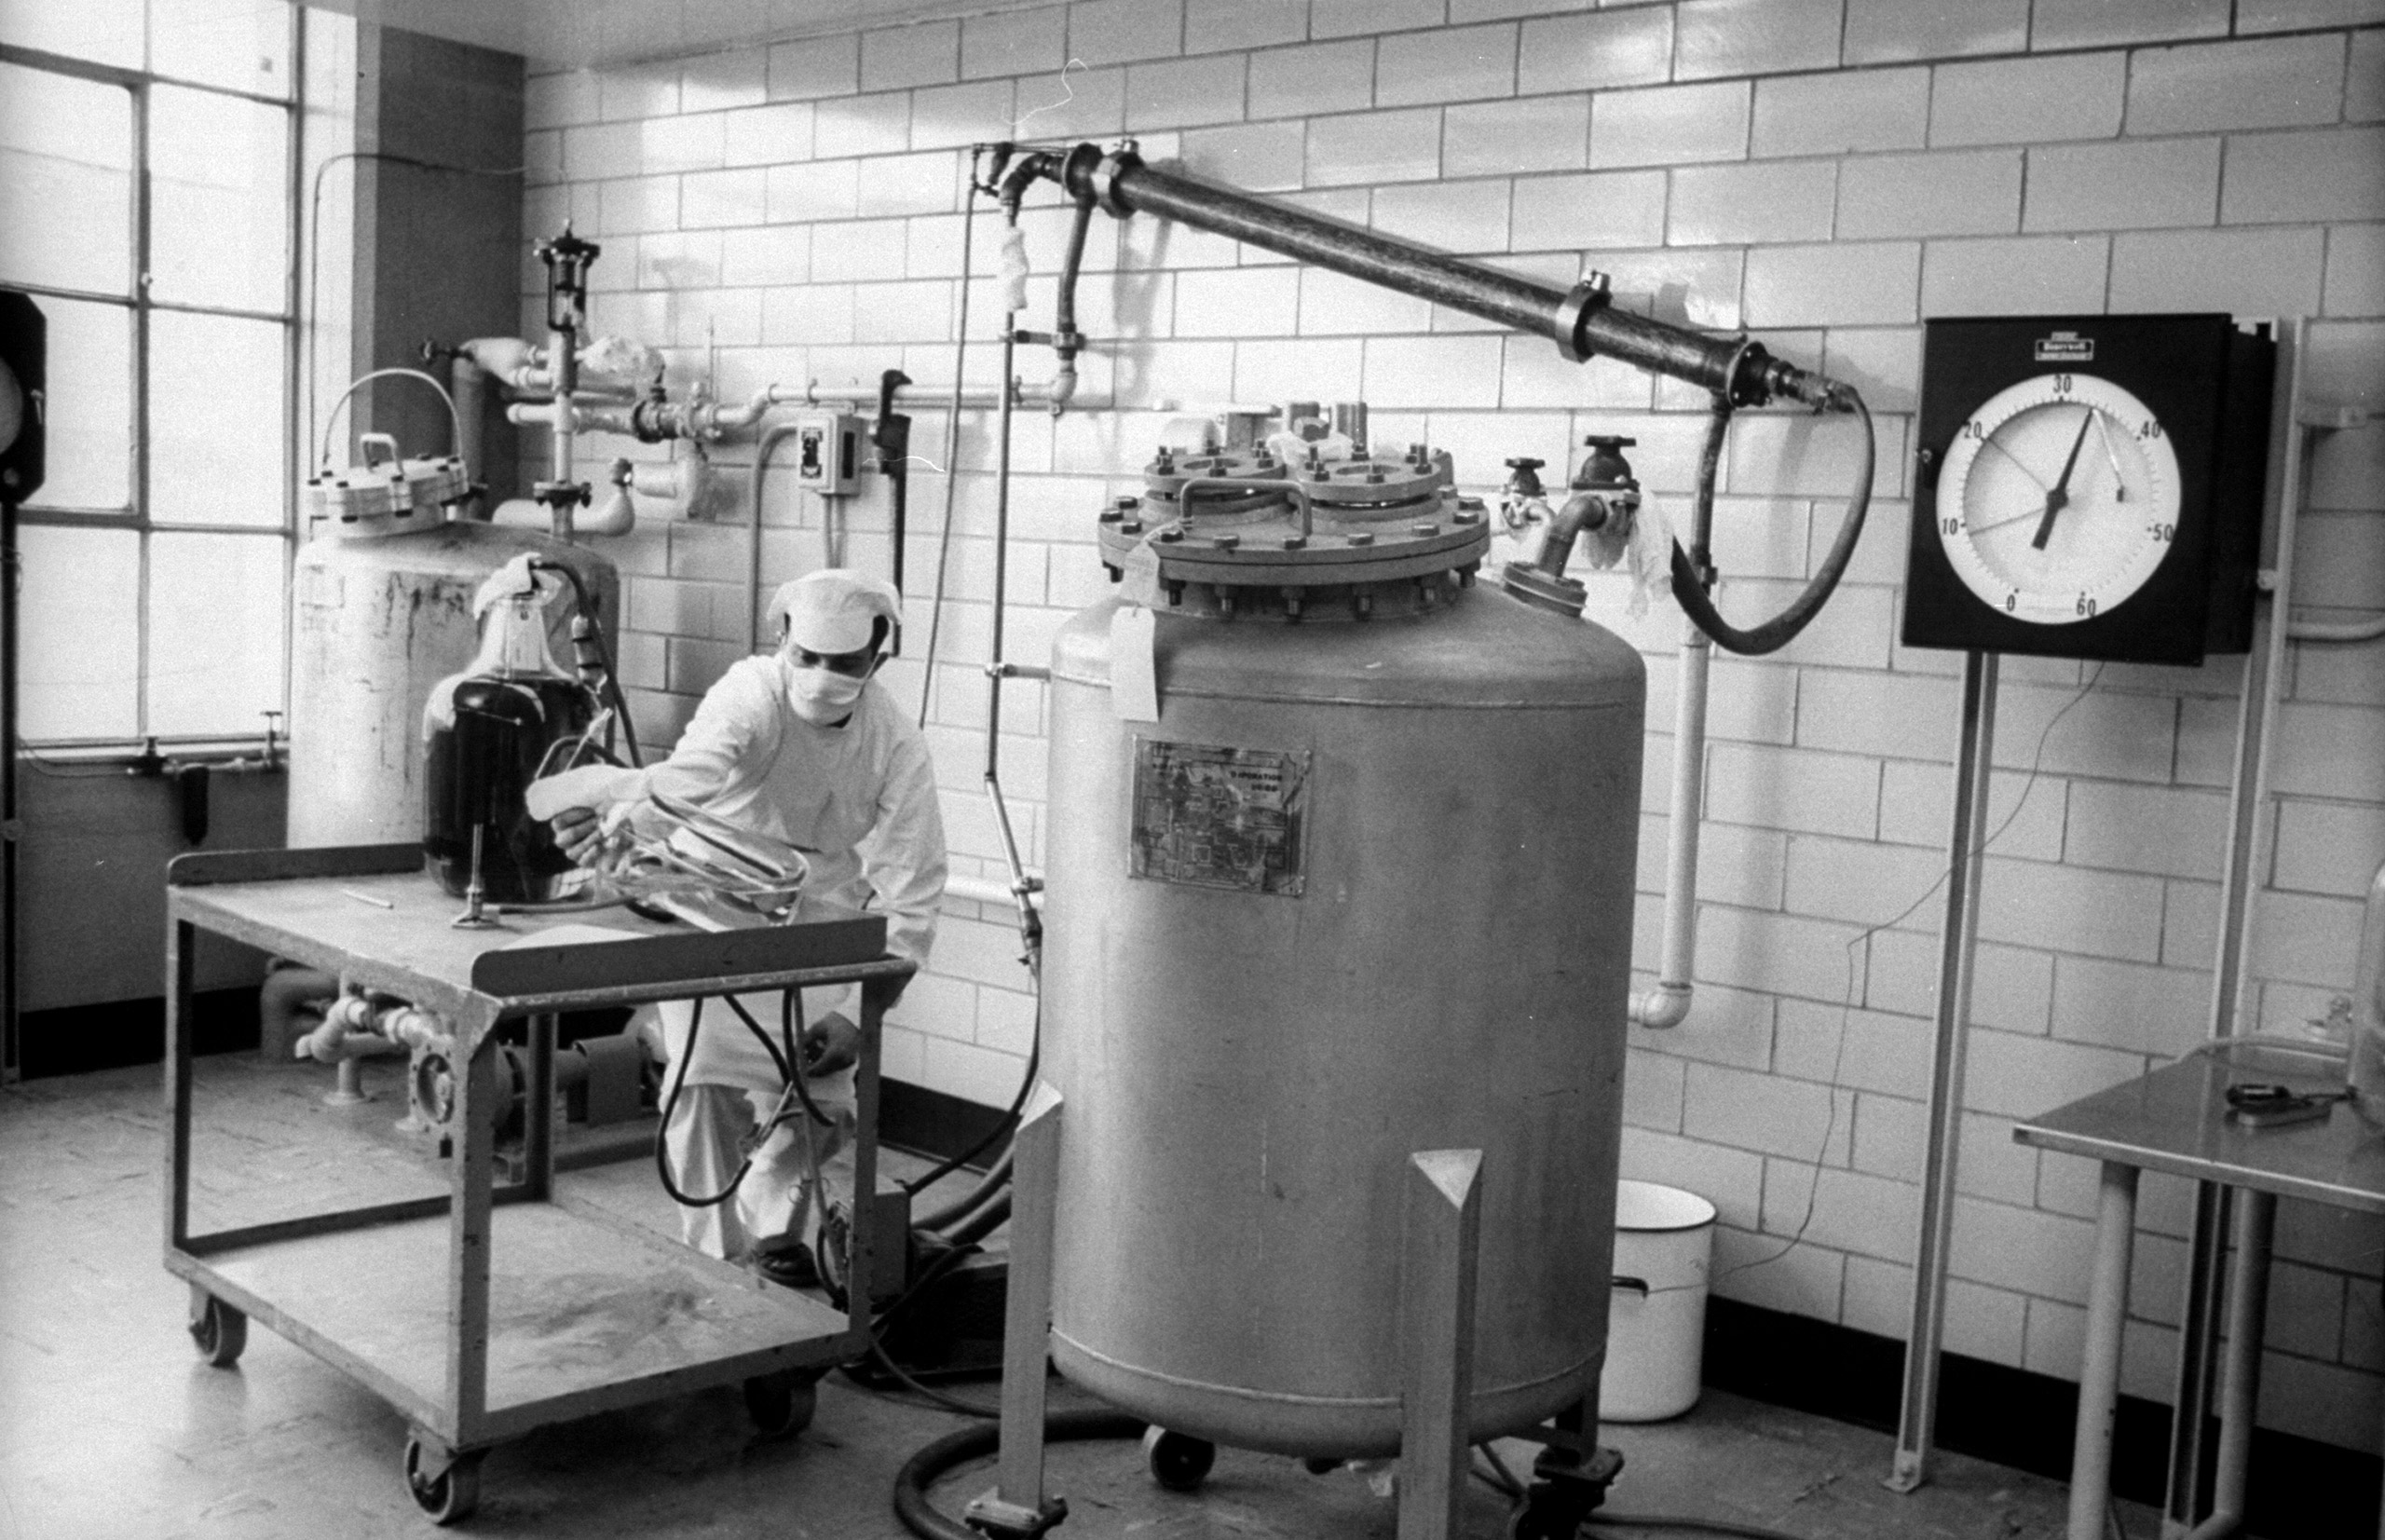 <b>Caption from LIFE.</b> To kill virus, worker makes up formaldehyde solution which is pumped into tube overhead simultaneously with vaccine-to-be from tank. When throughly mixed, liquid goes back into tank where formaldehyde does its work.